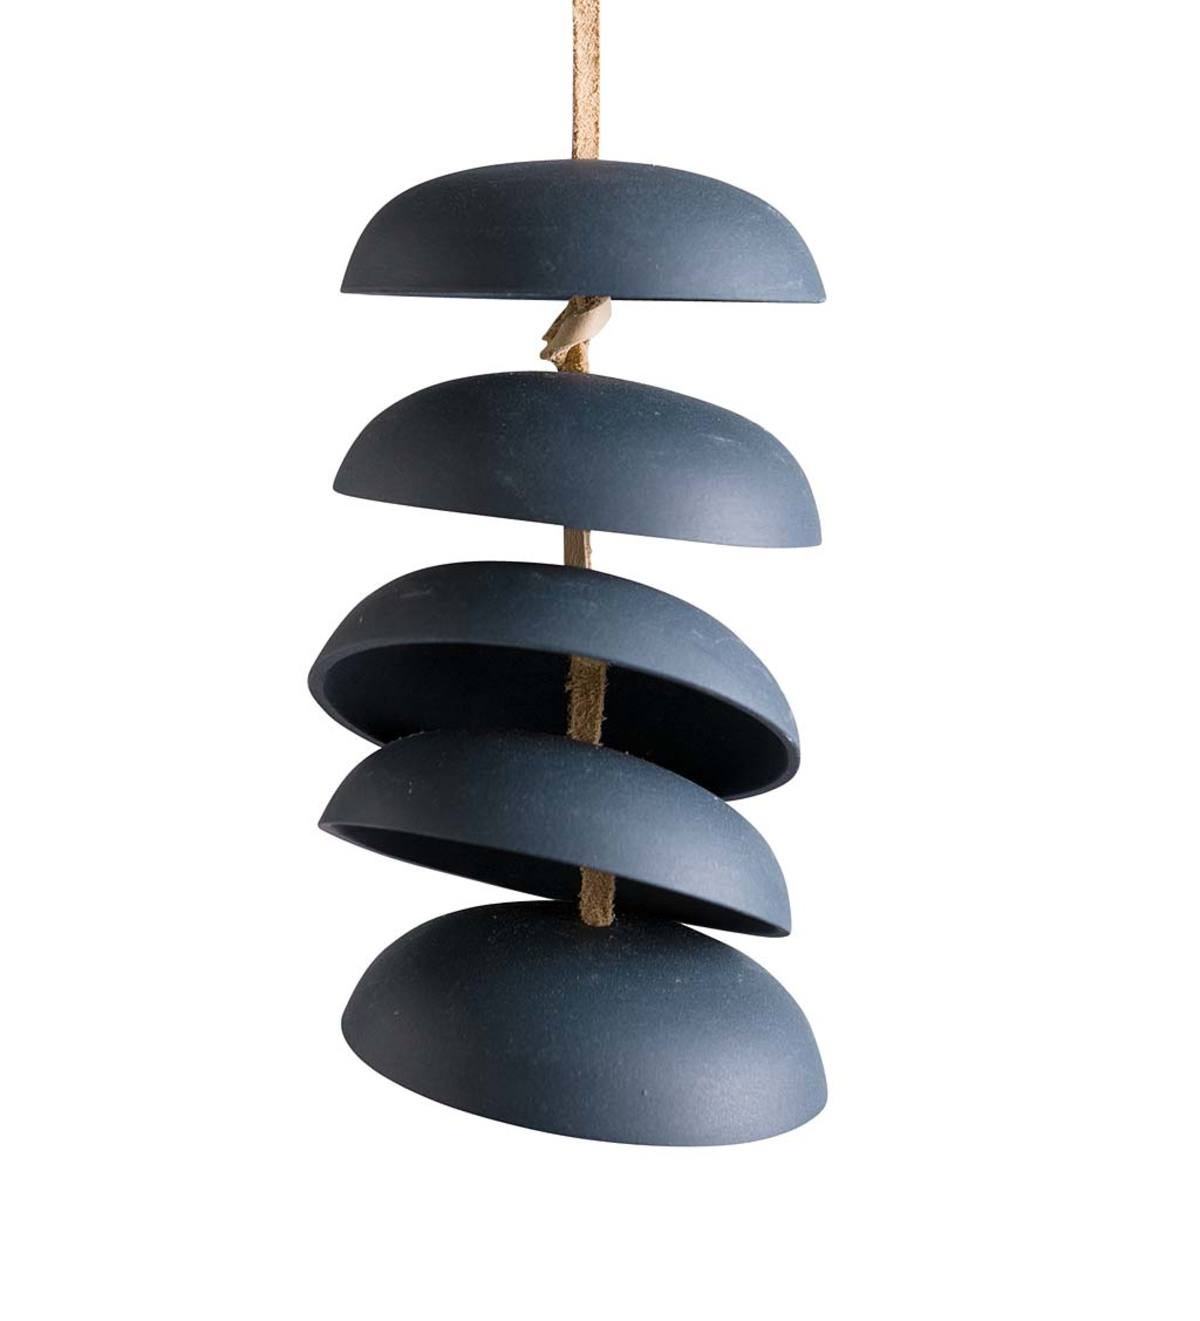 Ceramic Chime Sets, 5 Discs - Charcoal - SM